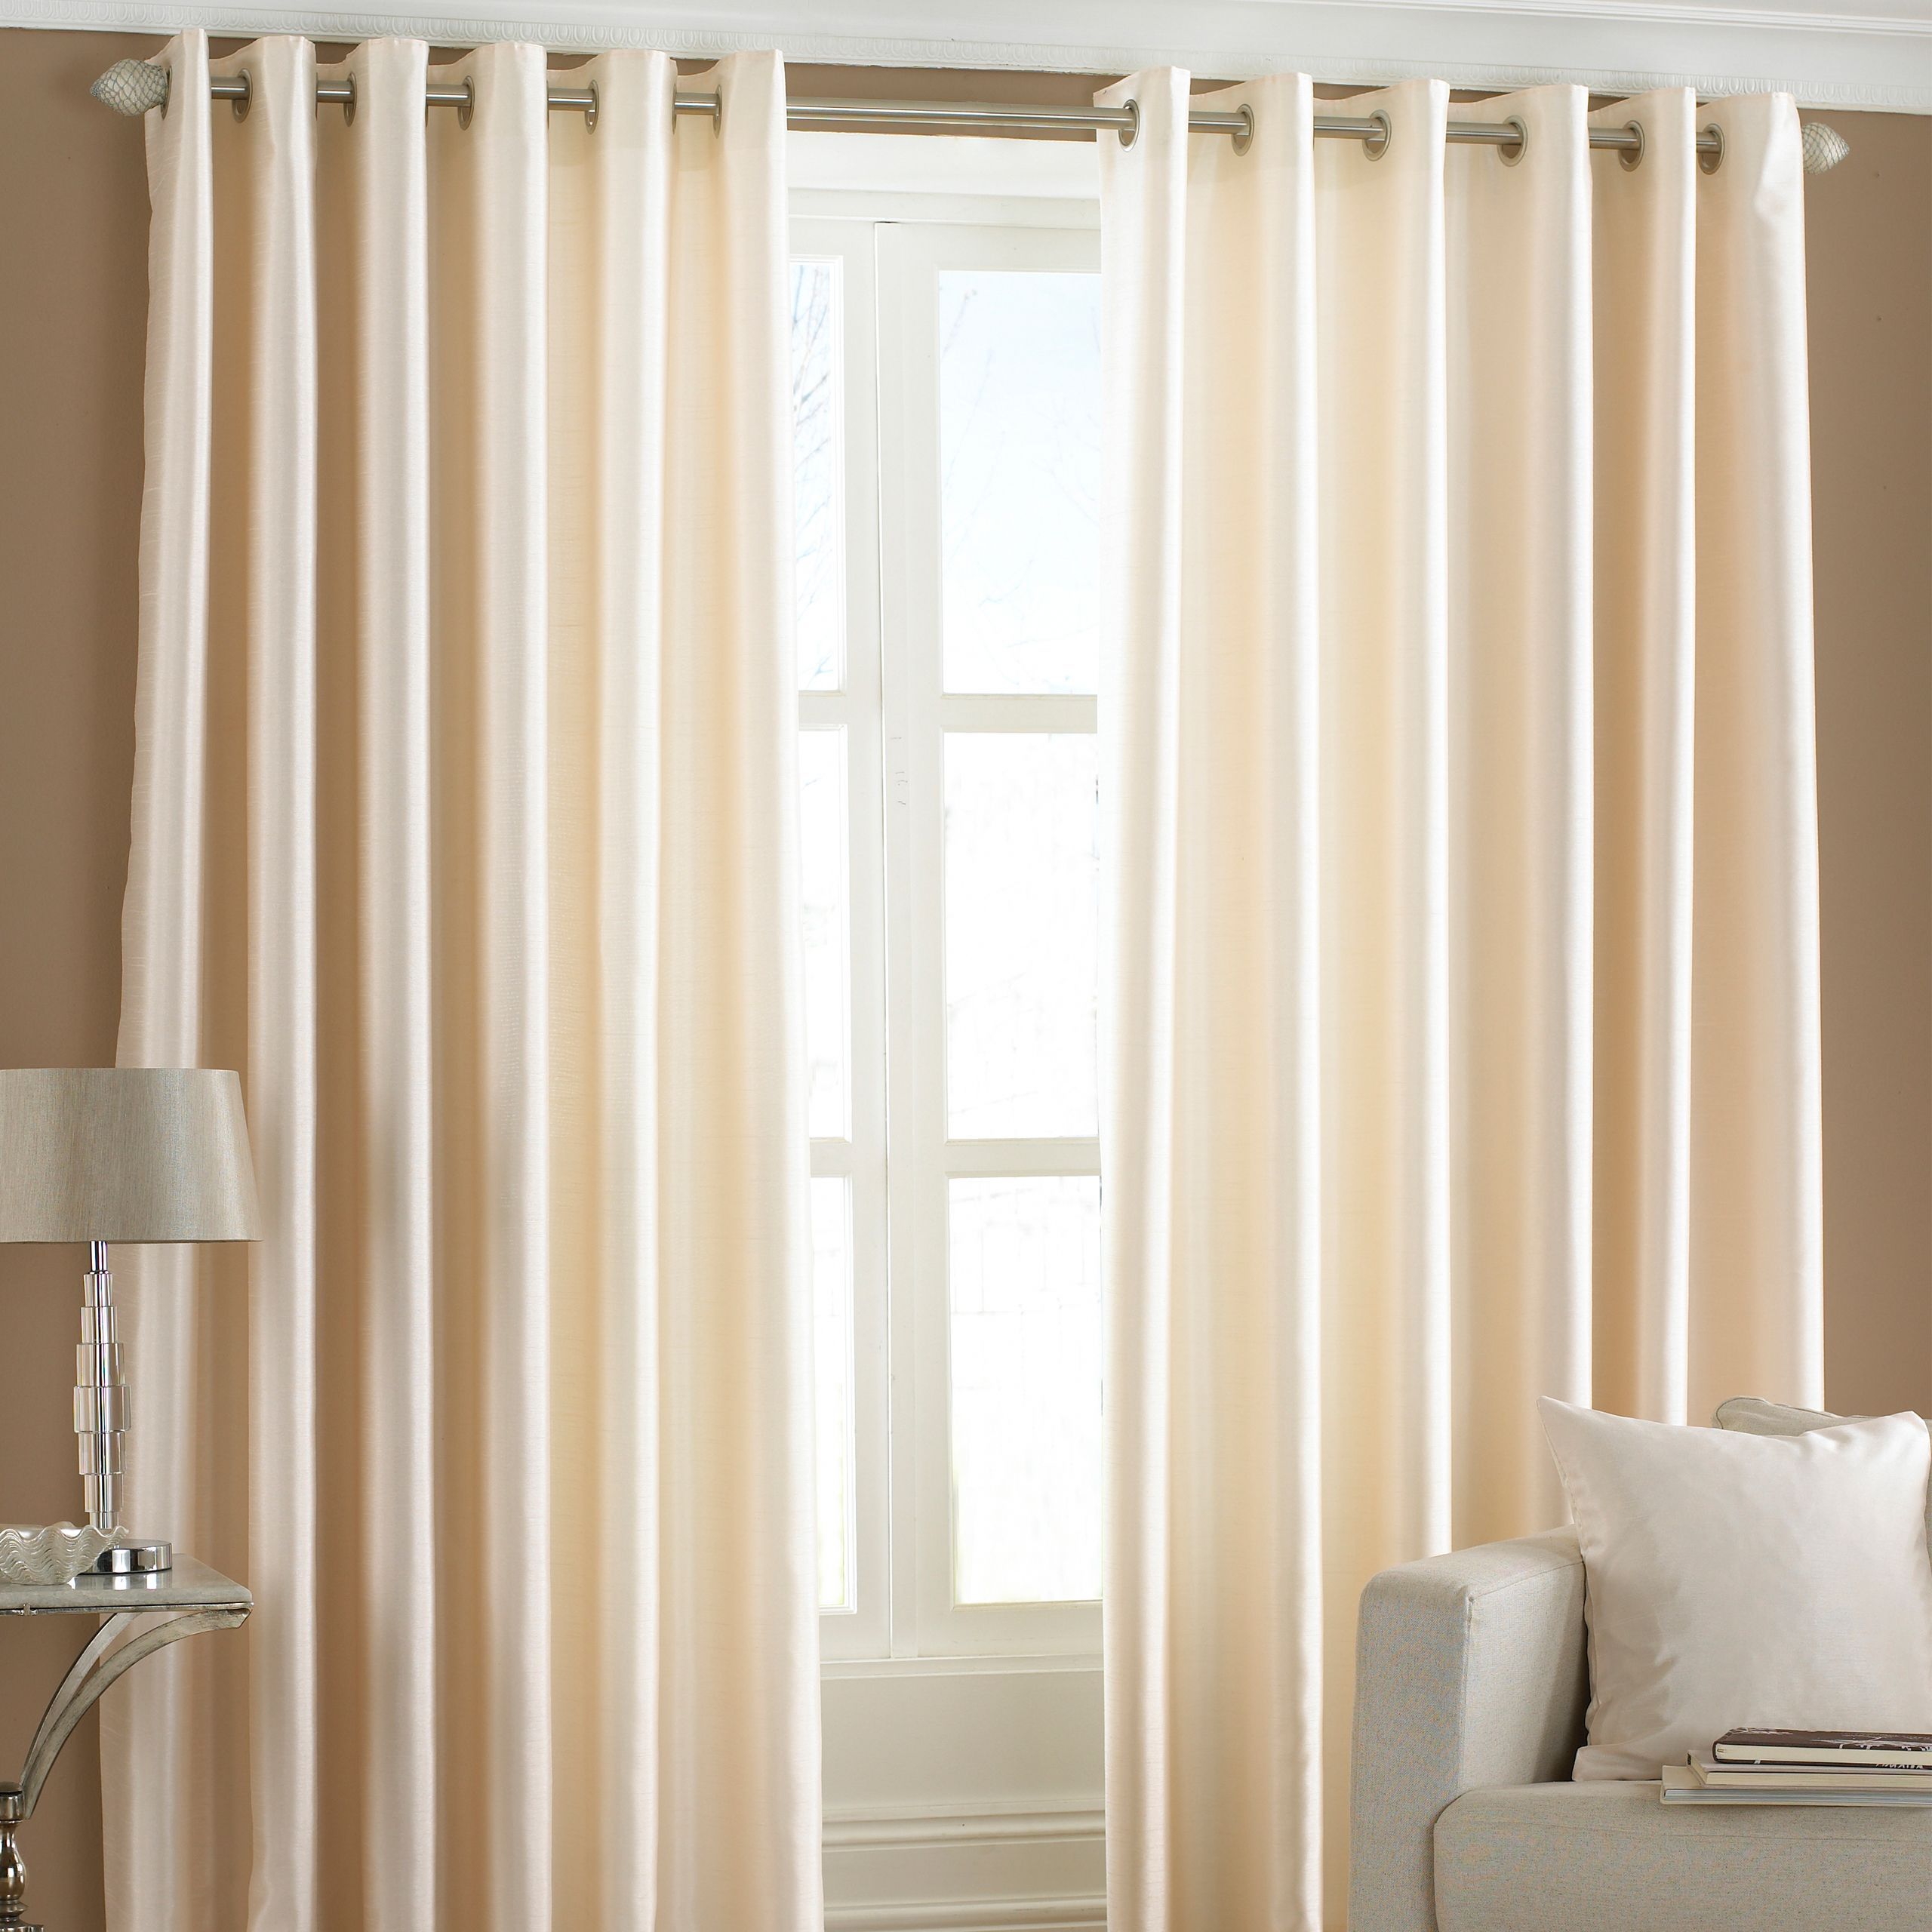 Fiji Silk Effect Eyelet Curtains in Cream